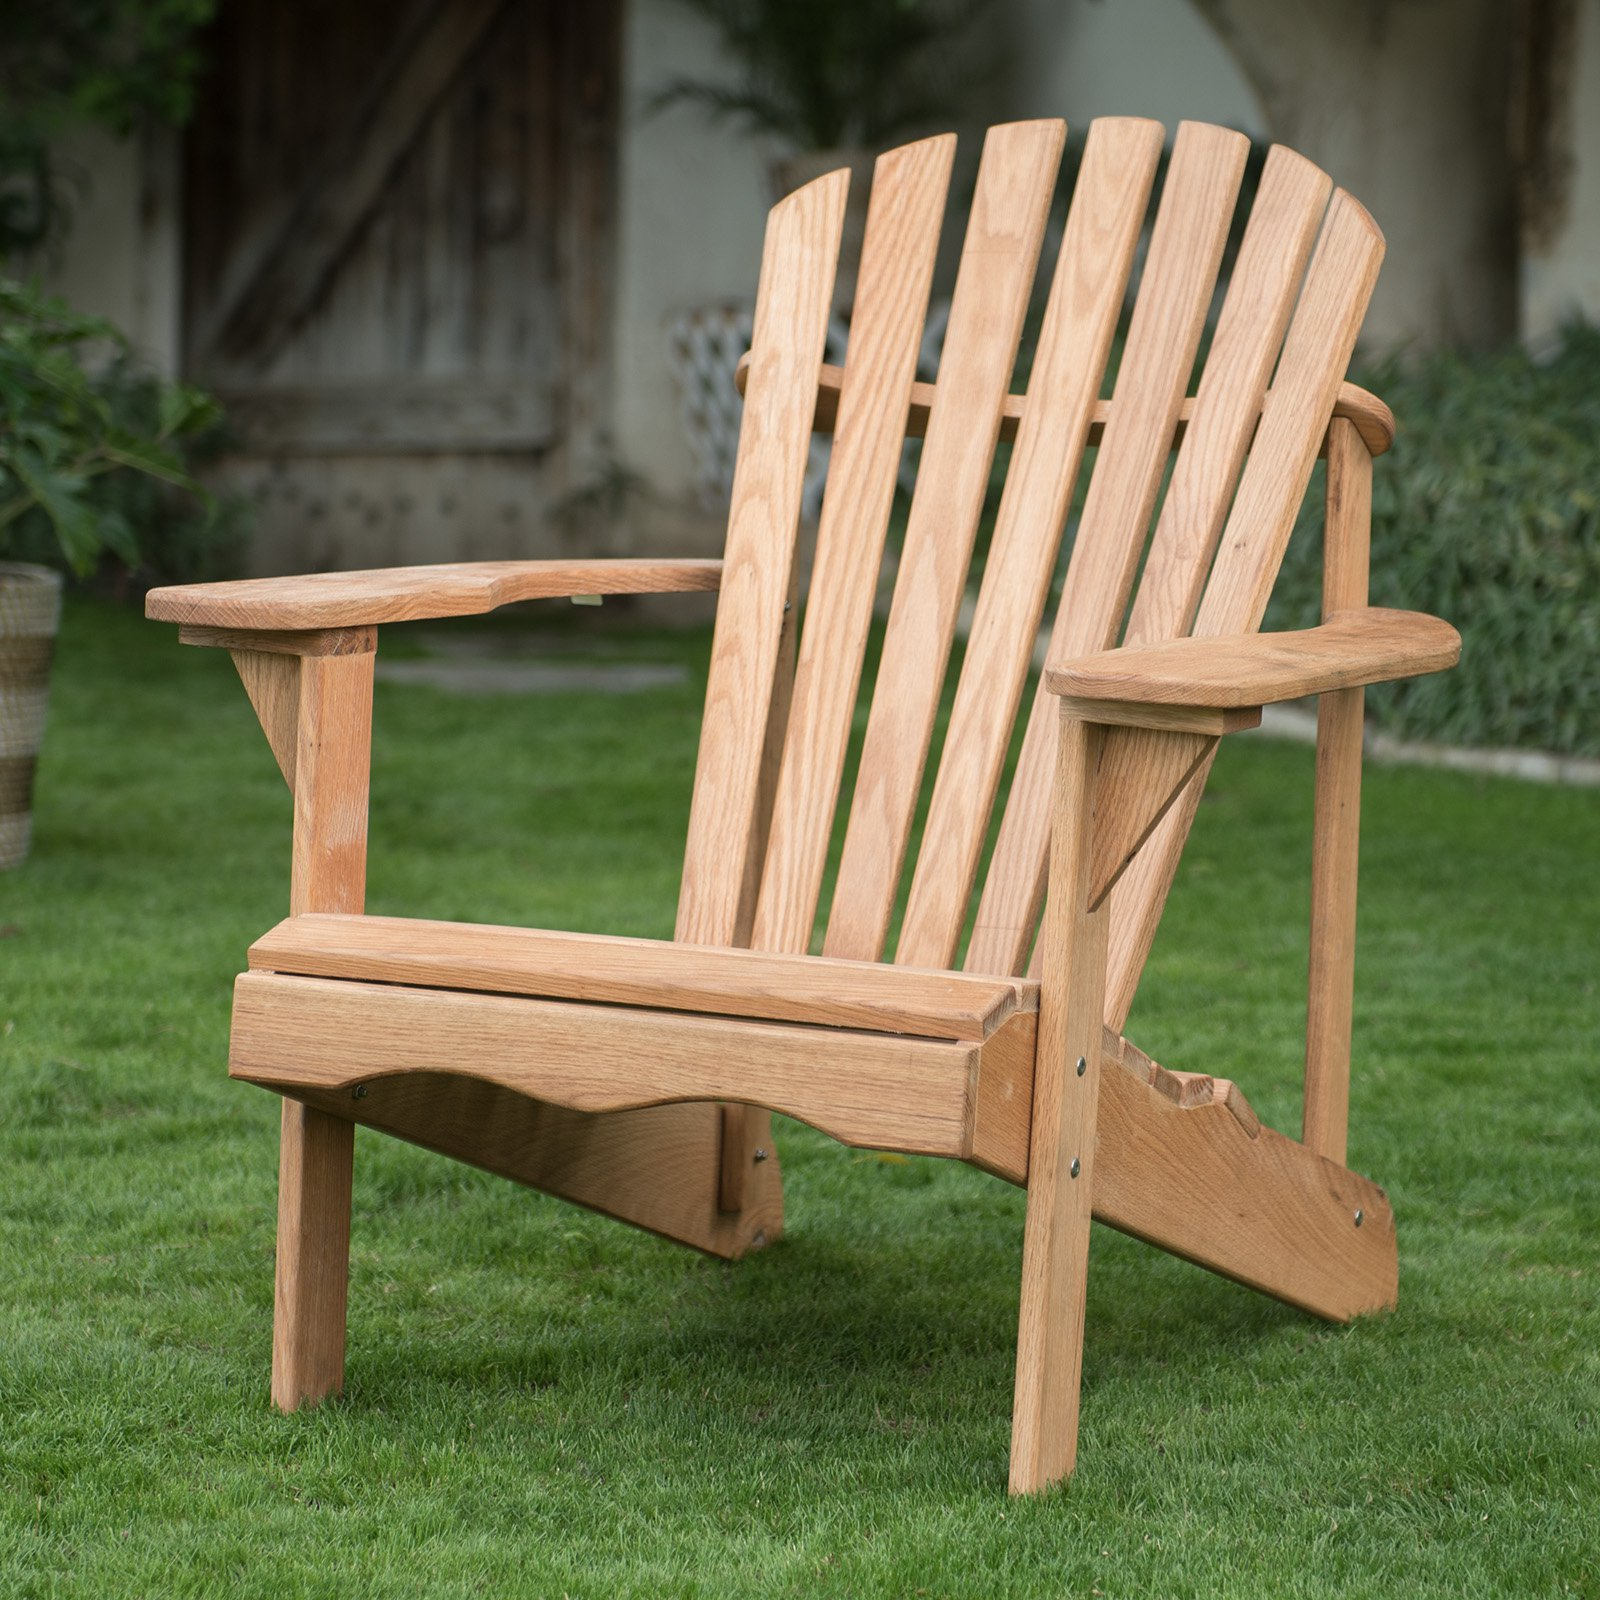 Belham Living Hampton Oak Wood Deluxe Adirondack Chair by 4 Seasons Global Inc